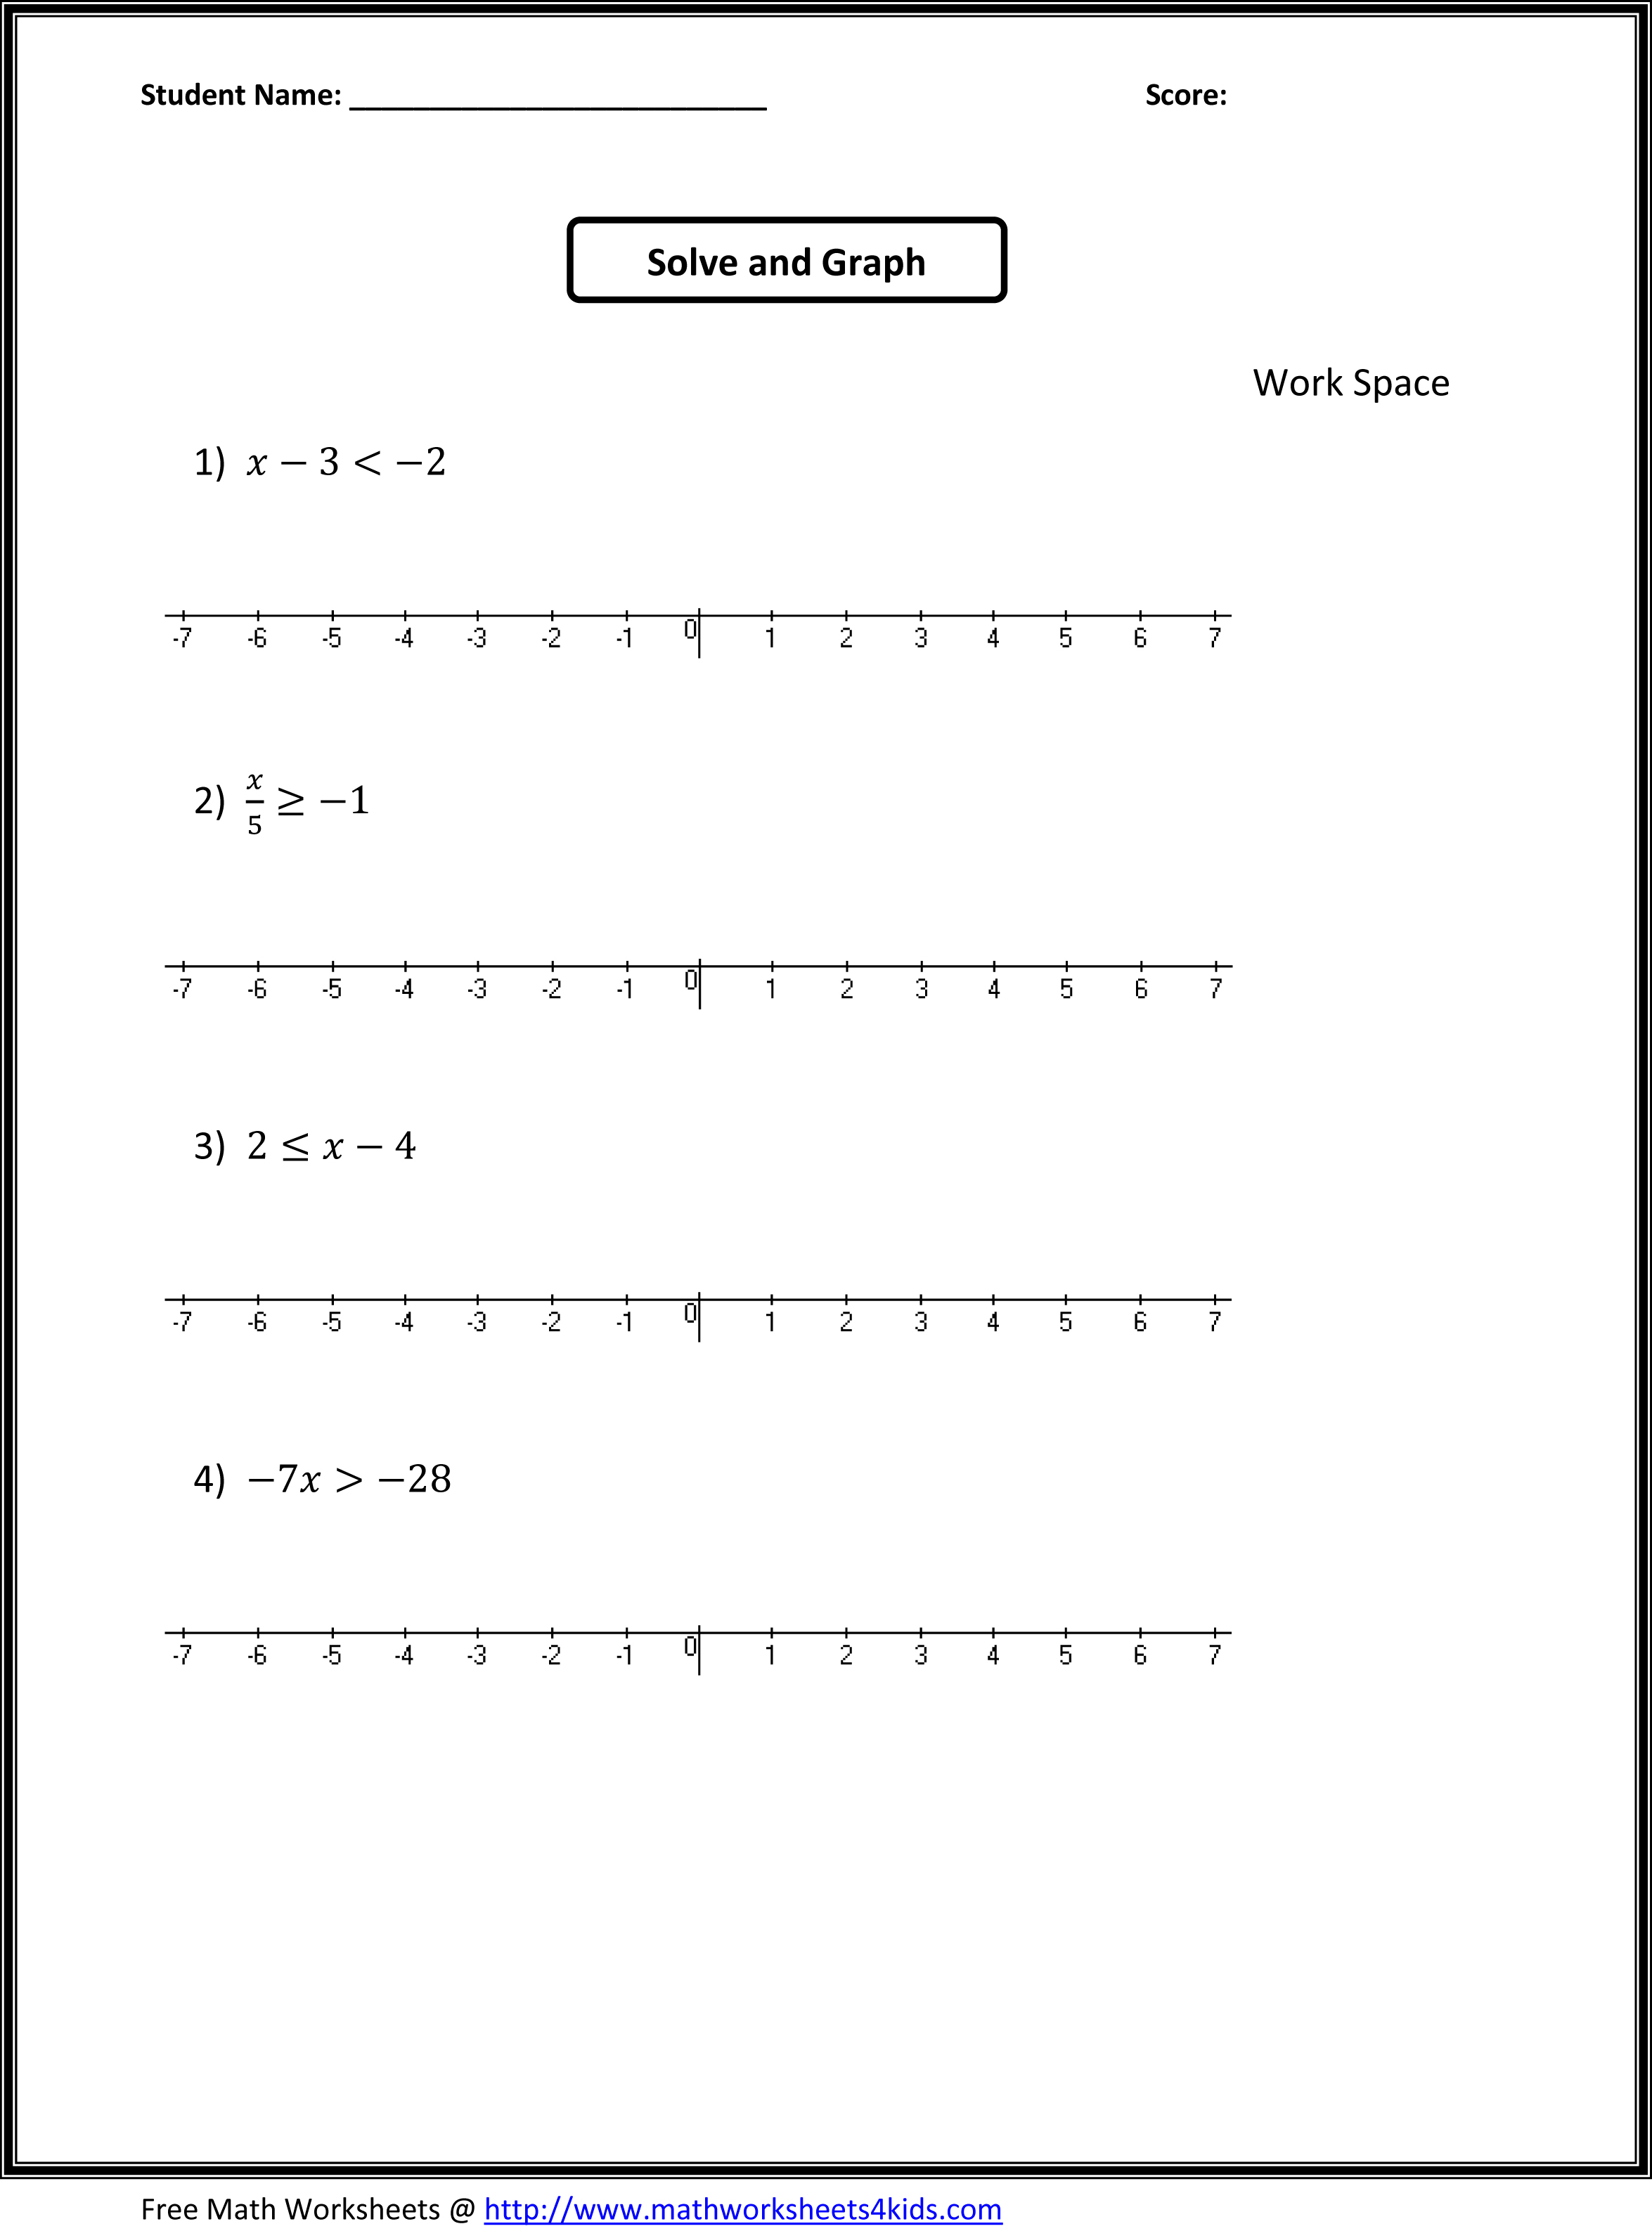 Math 7 Worksheets Grade 7 Math Worksheets And Problems Integers – Grade 7 Math Worksheets Algebra